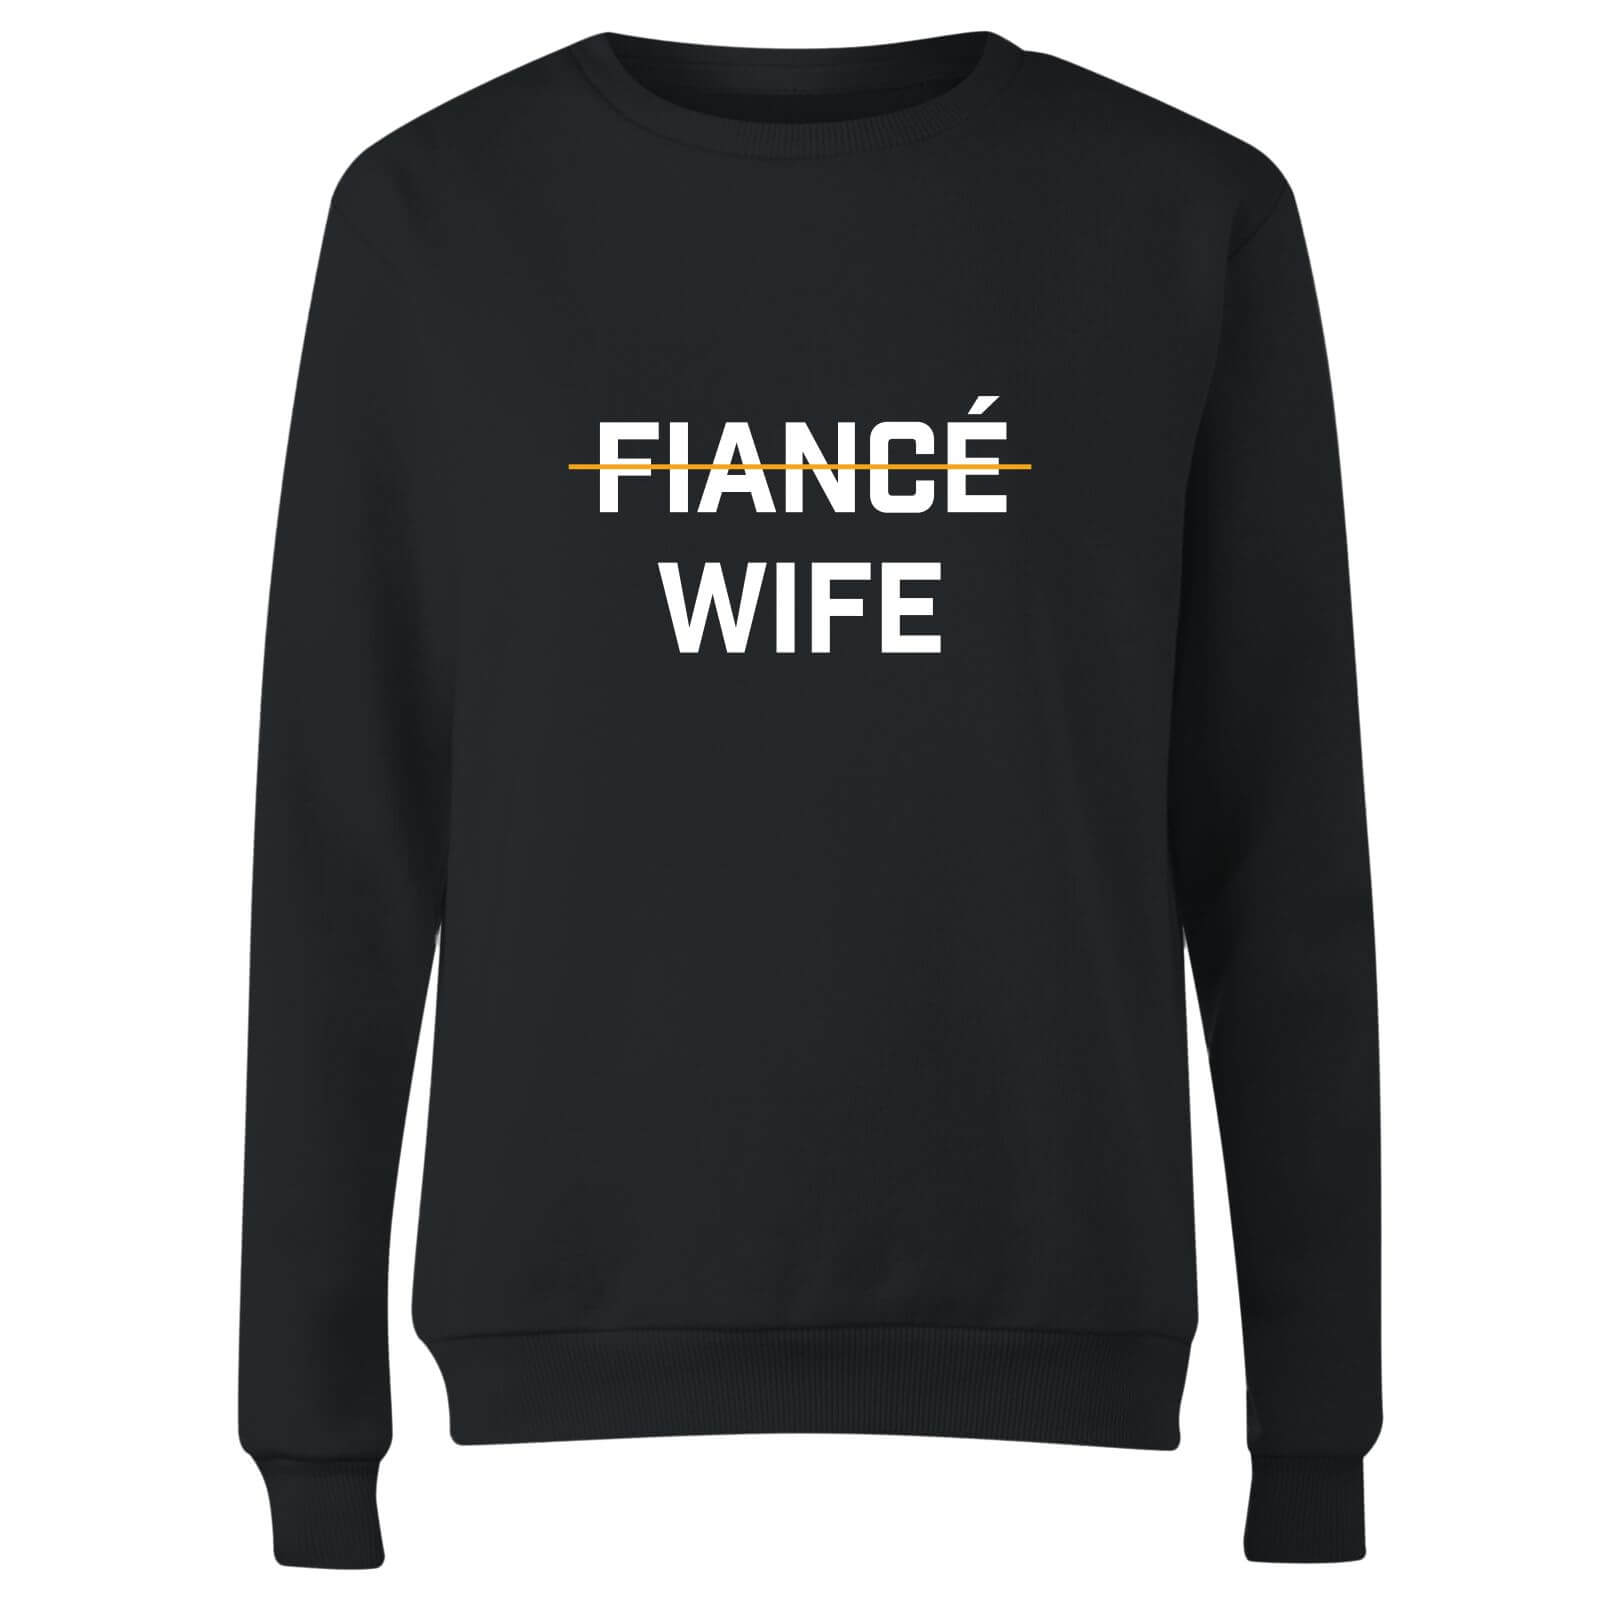 Fiance Wife Women